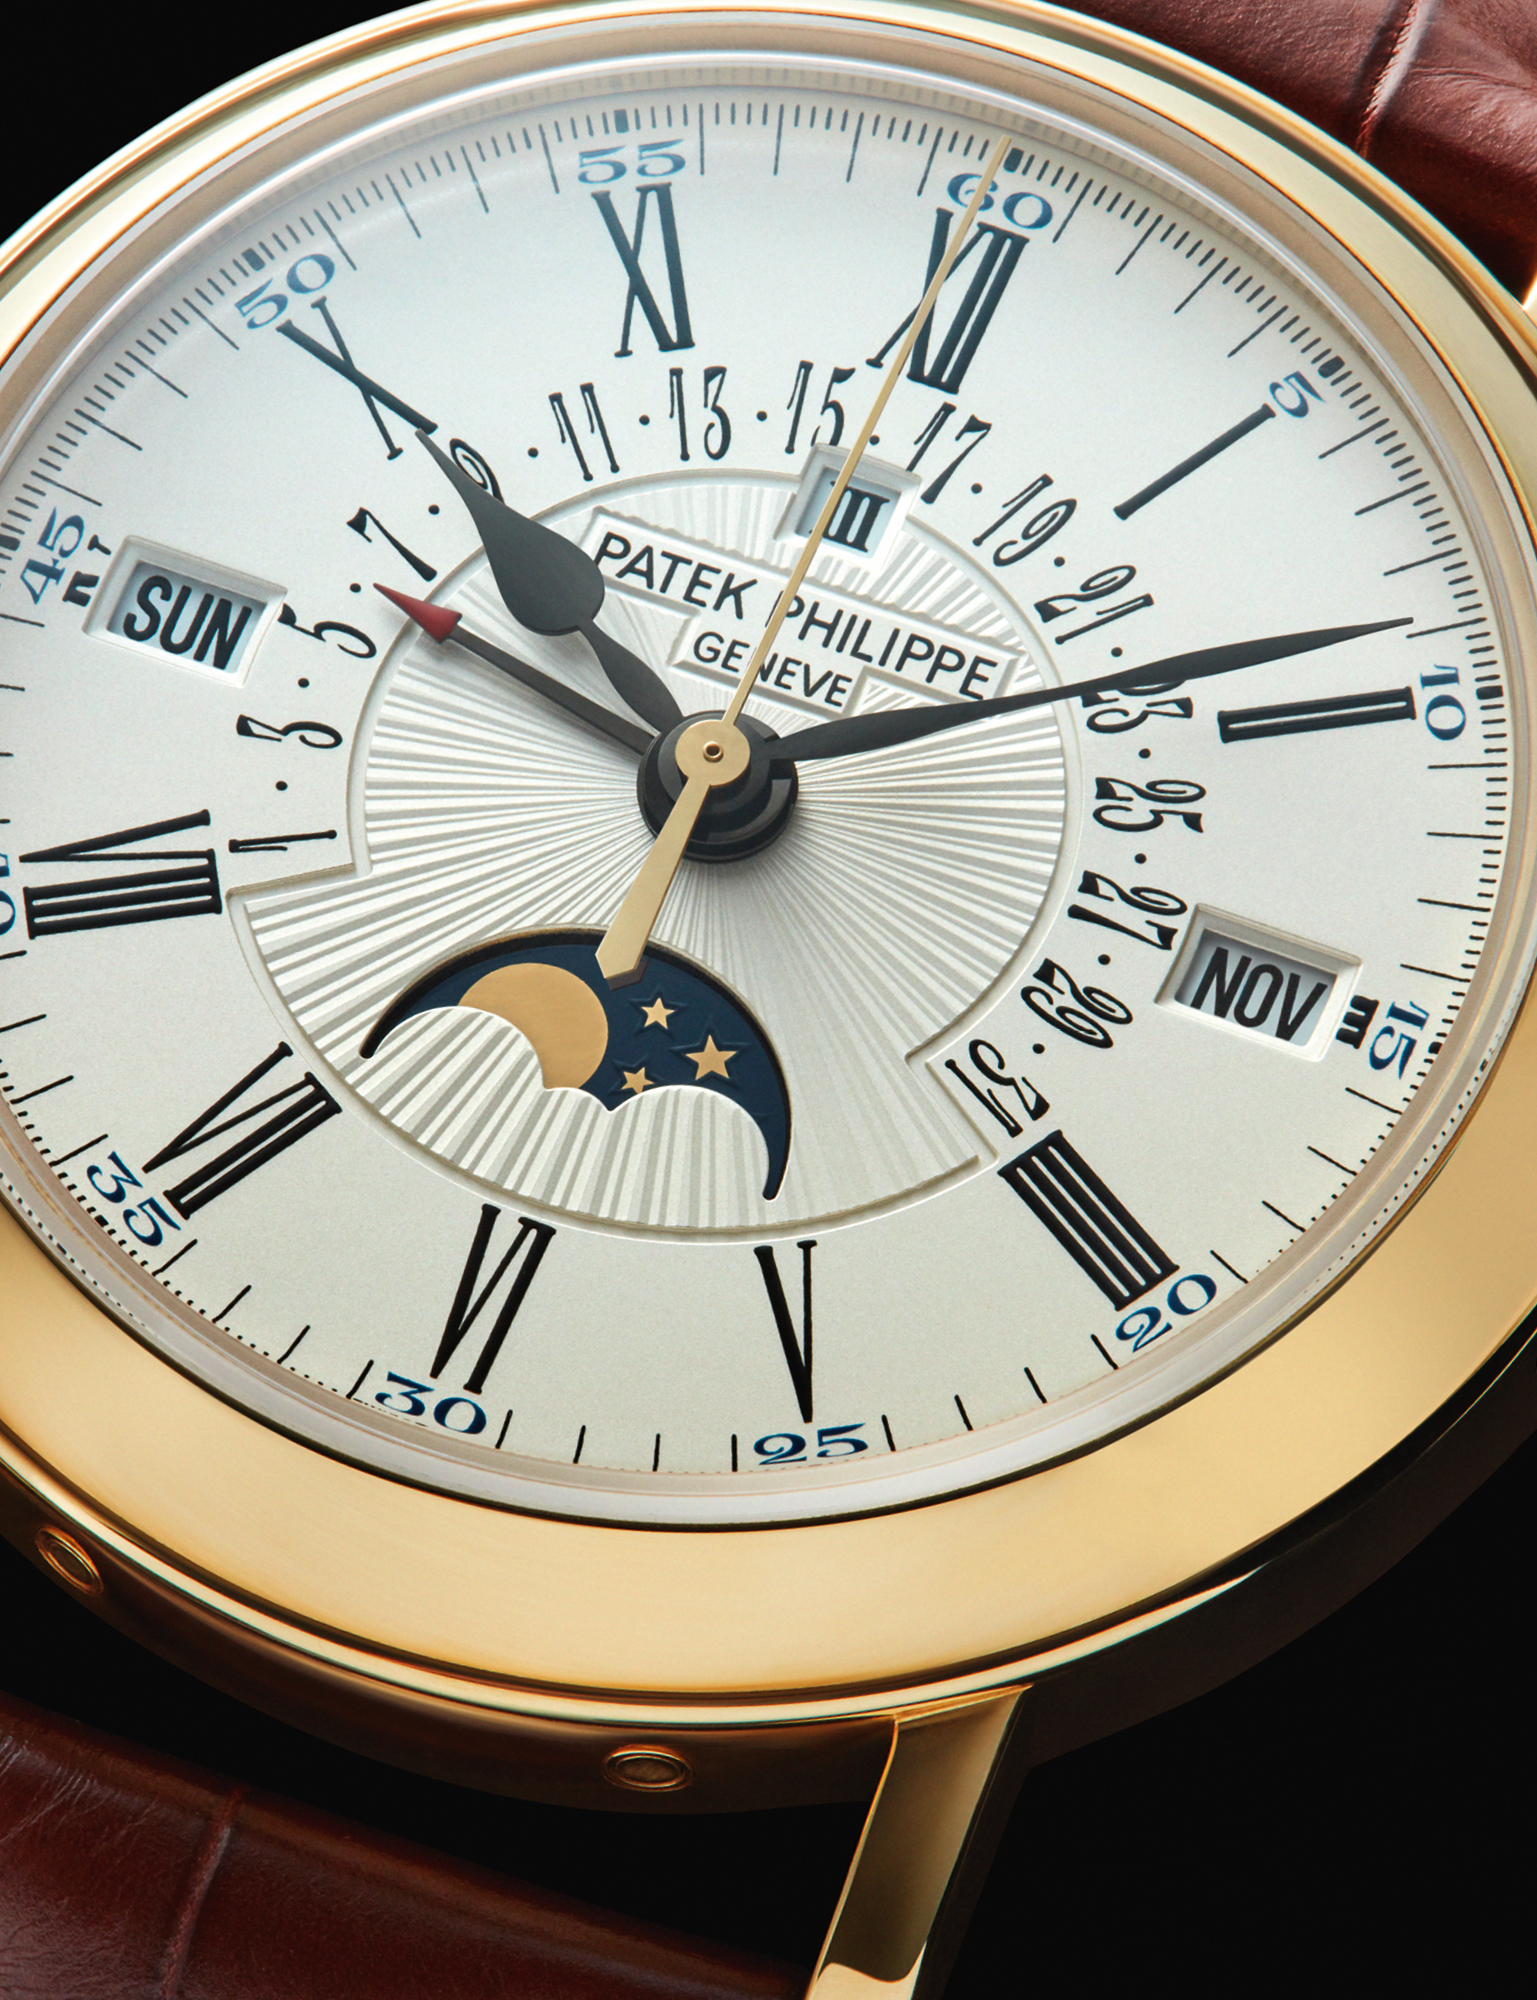 Able to accommodate months with 31, 30 and 28 days, plus February 29 in leap years, Patek Philippe's Mens Ref. 5159J-001 Perpetual Calendar features an opaline-white dial with hand-guilloched centre. £73,620, PATEK PHILIPPE